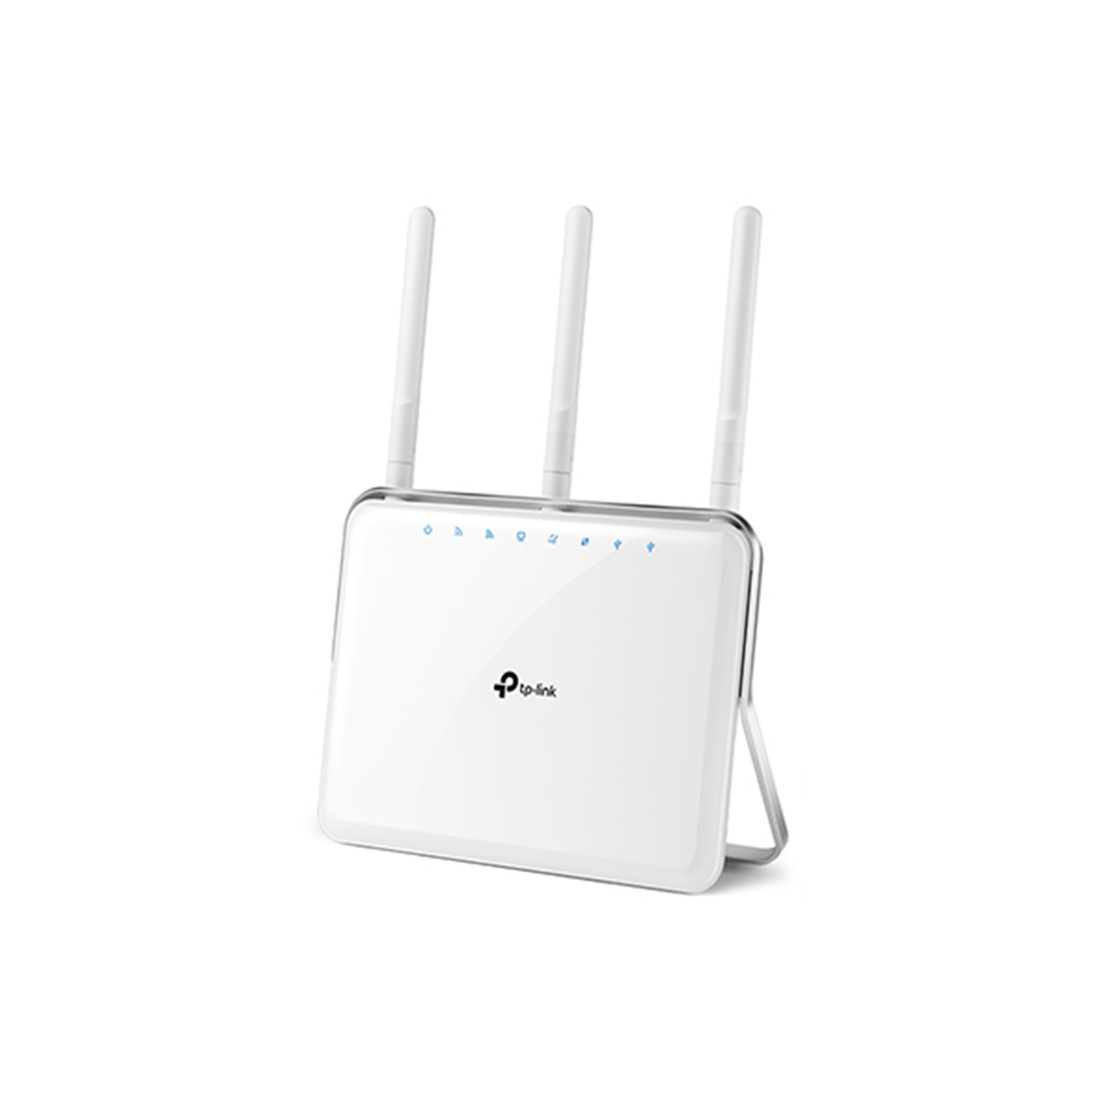 Маршрутизатор TP-Link Archer C9, 1900М